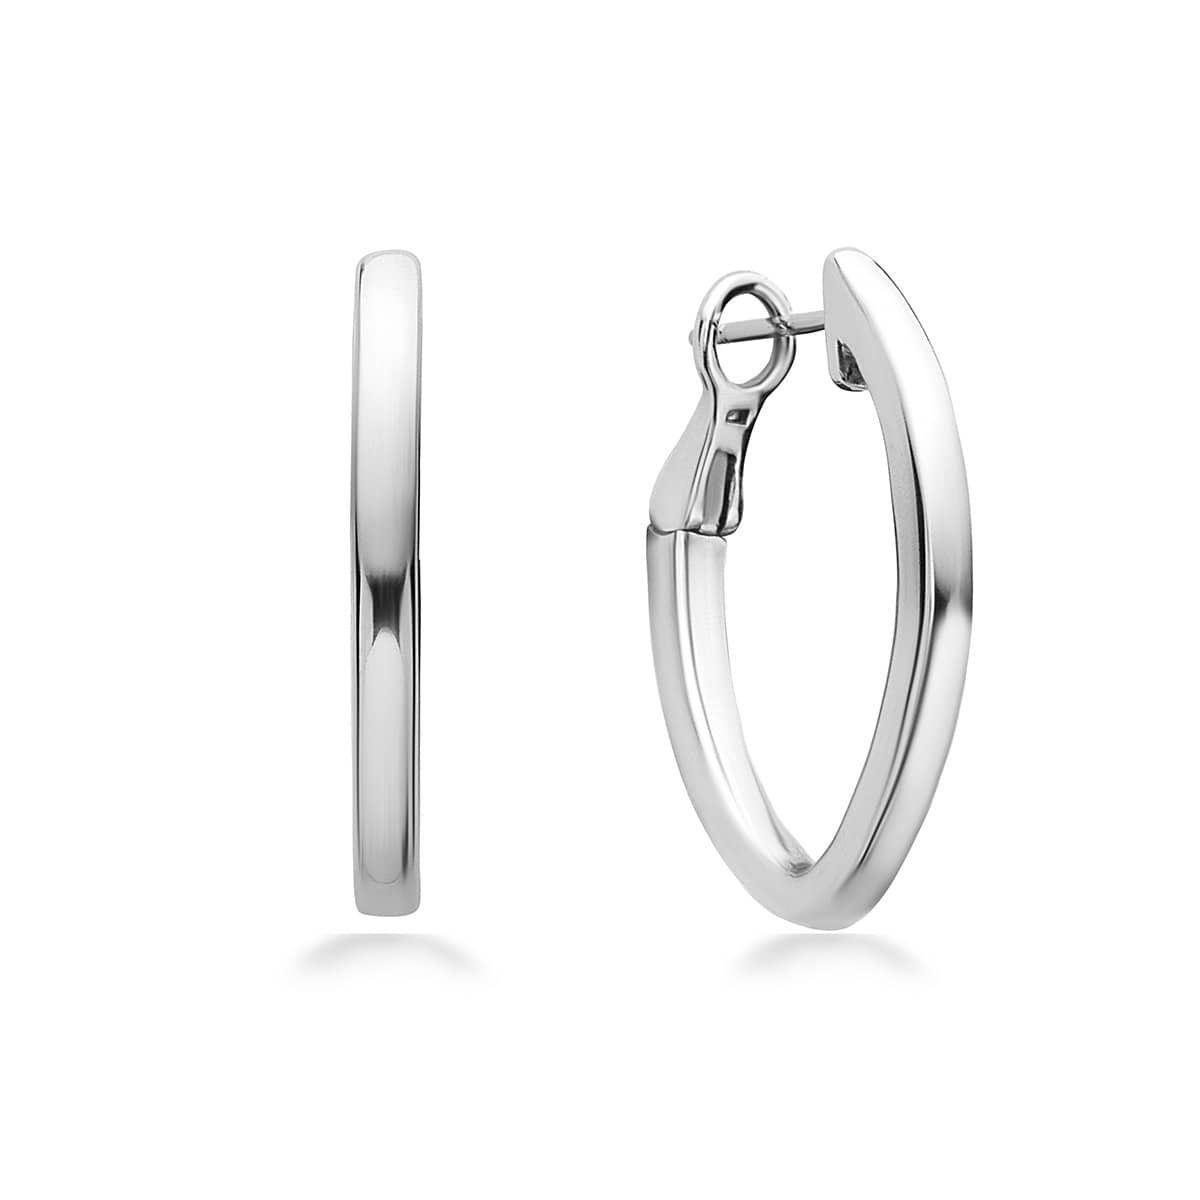 14K White Gold & Sterling Silver 27MM Hoop Earrings